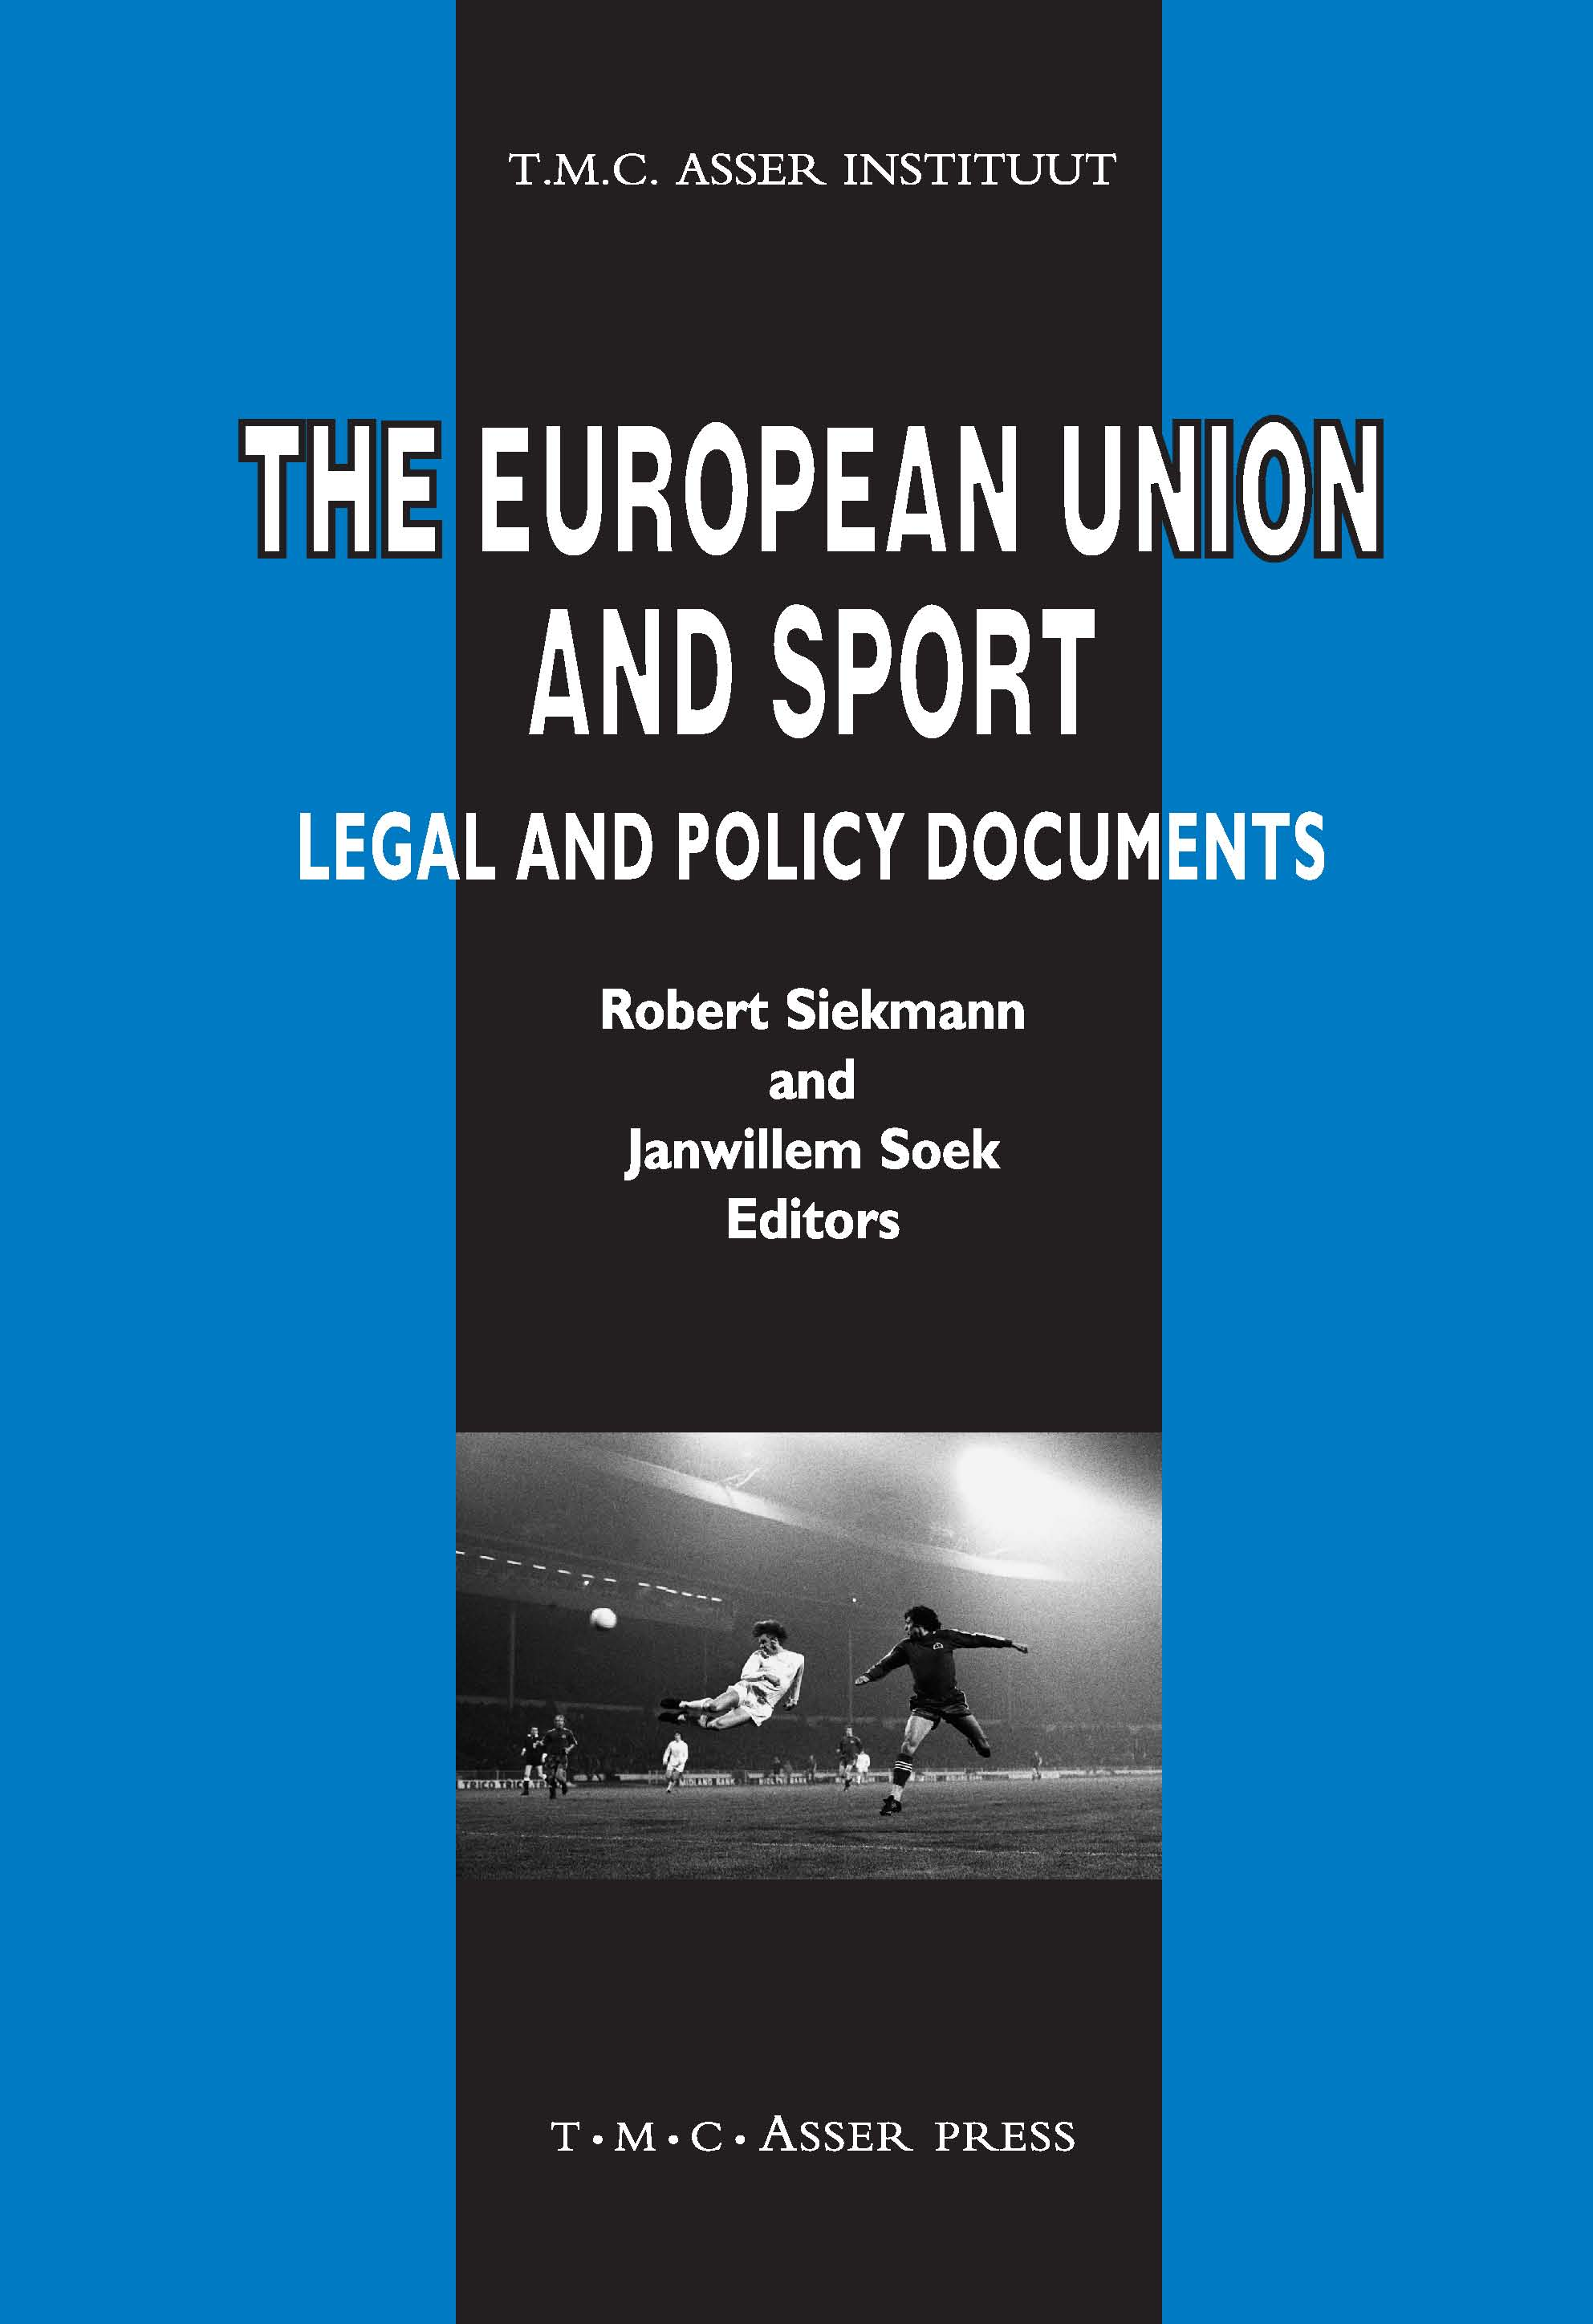 The European Union and Sport - Legal and Policy Documents